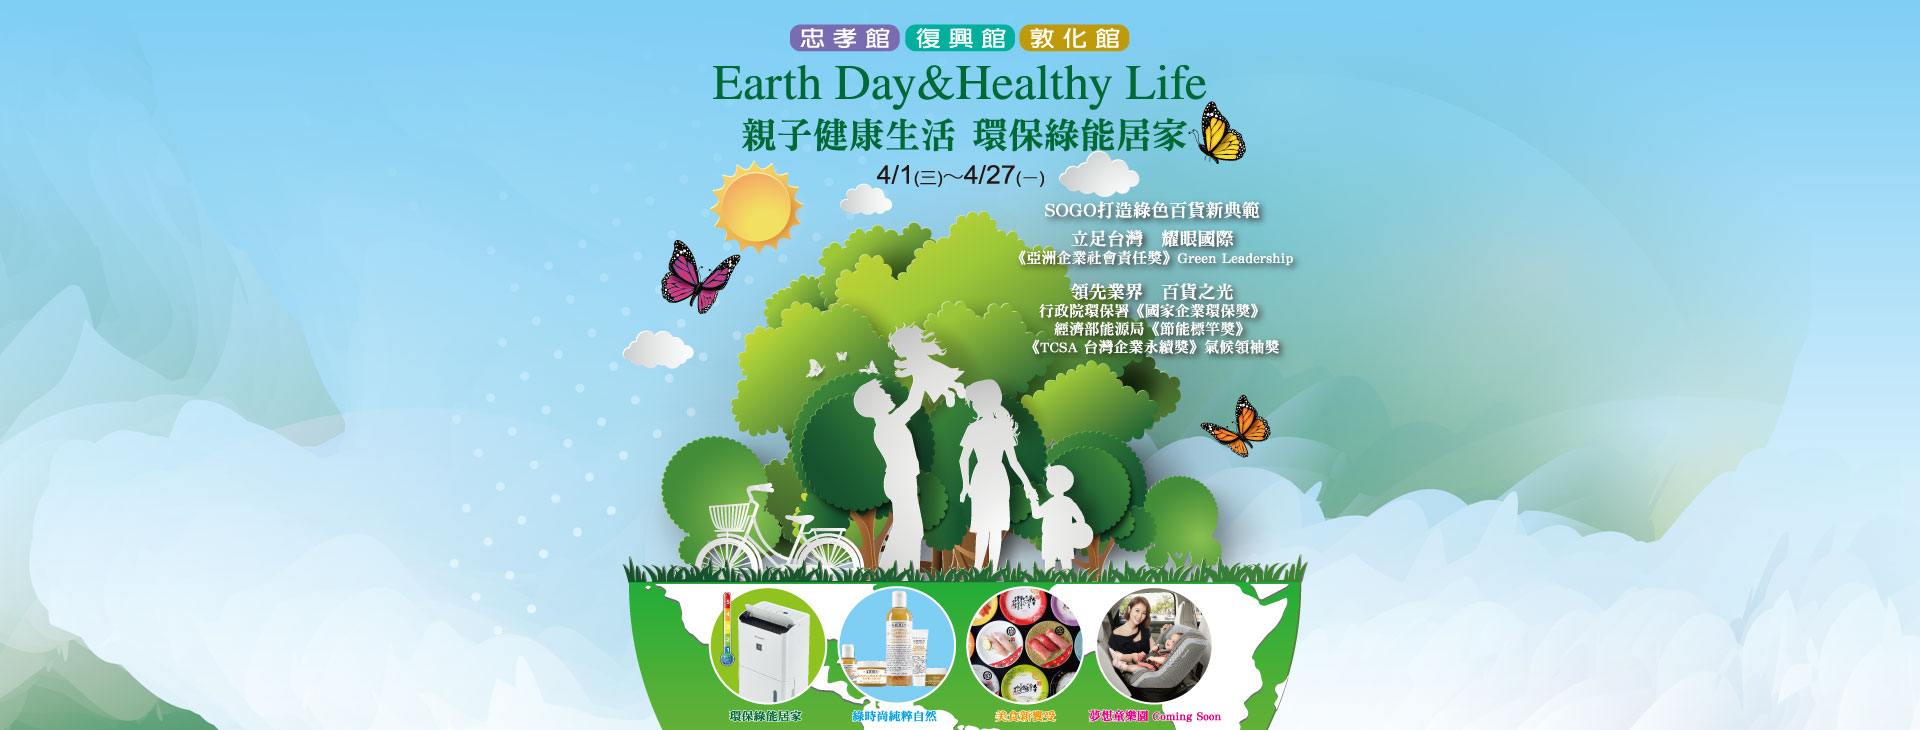 2020 Earth Day&Healthy Life親子健康生活 環保綠能居家